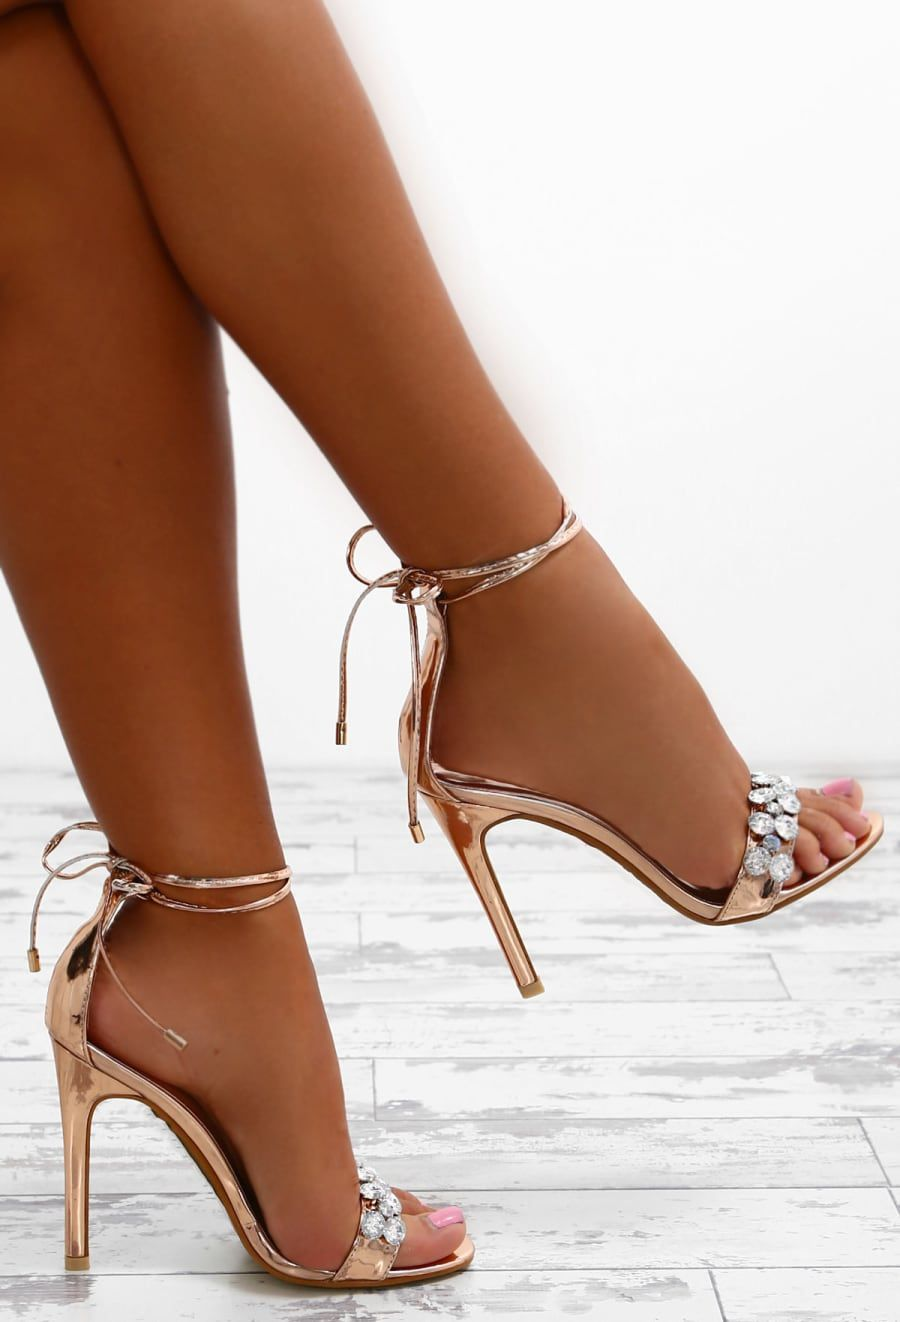 dfc0d3c27a5 Princess Party Rose Gold Embellished Ankle Wrap Heels - UK 6 in 2019 ...